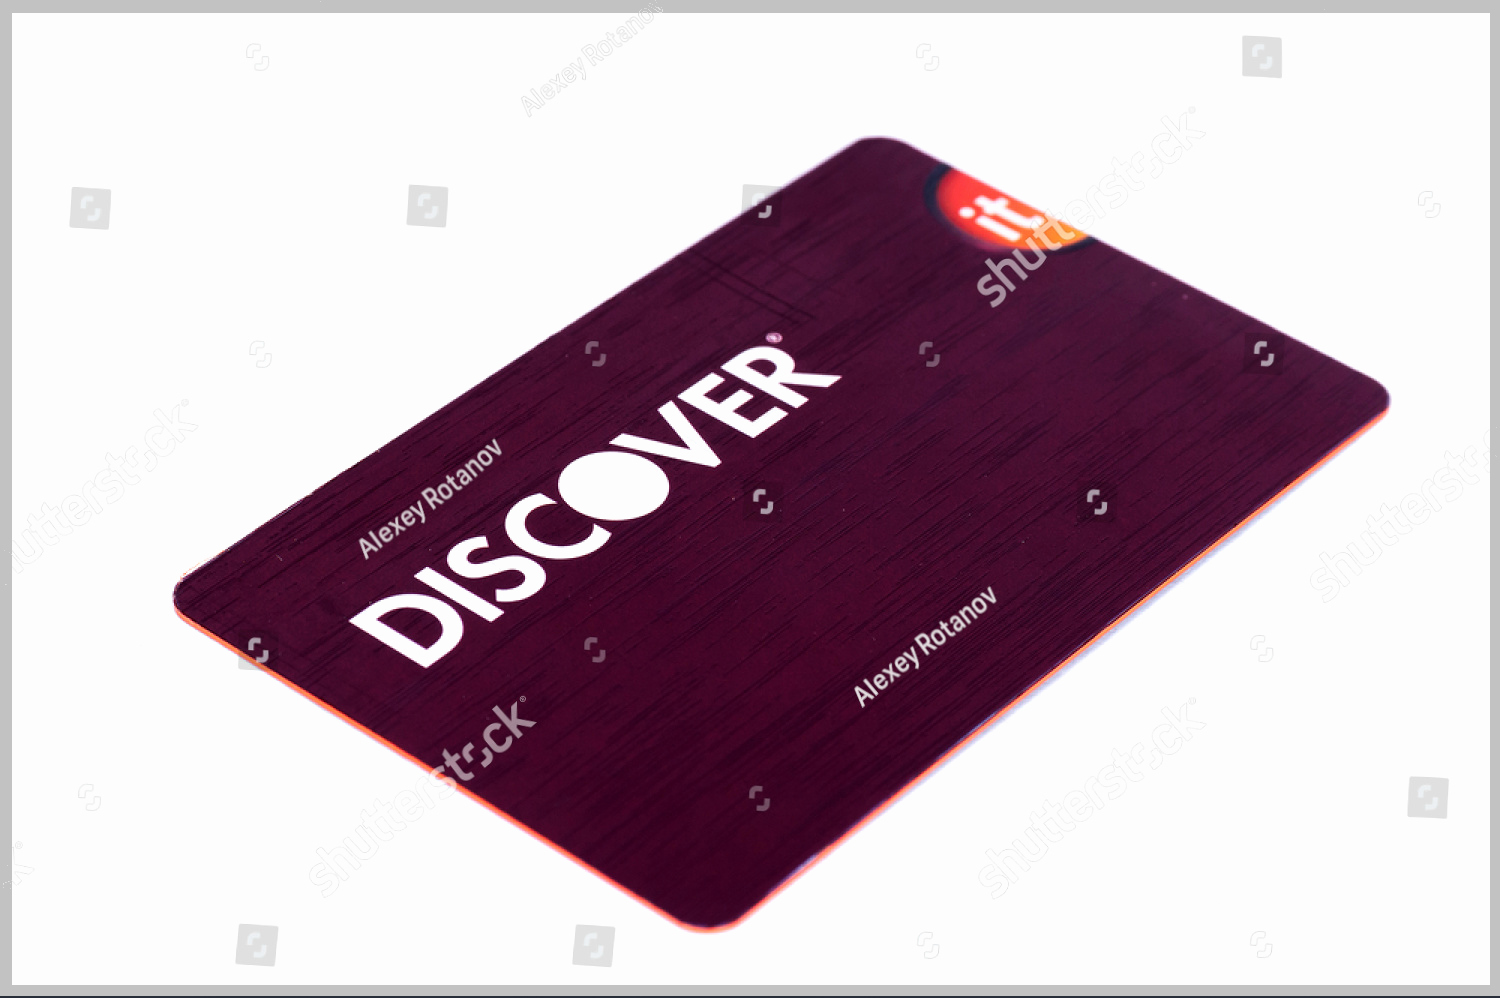 Discover Credit Card Designs Fresh 8 Discover Card Designs